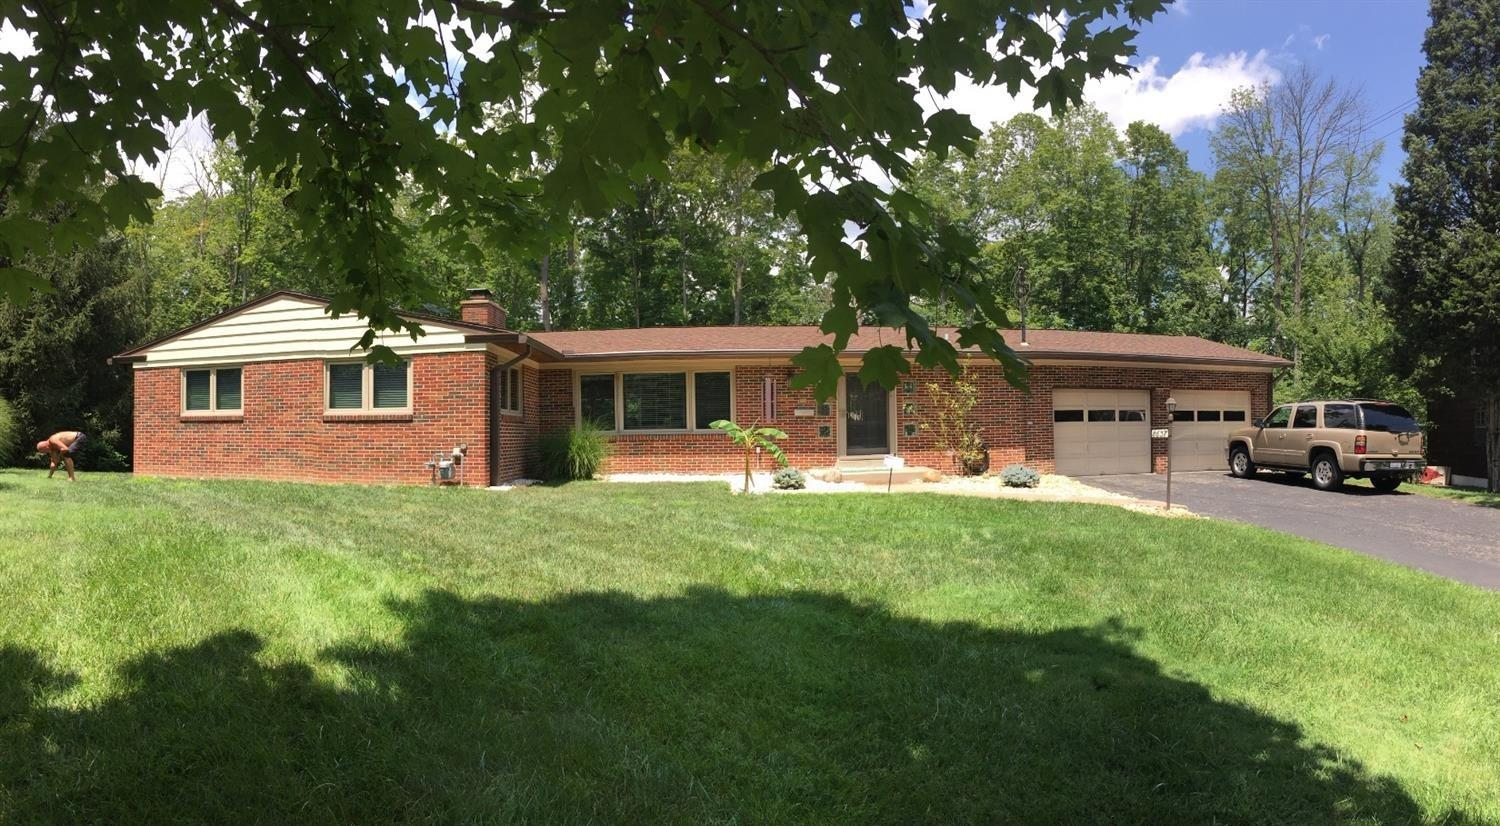 8637 Plainfield Ln Sycamore Twp., OH